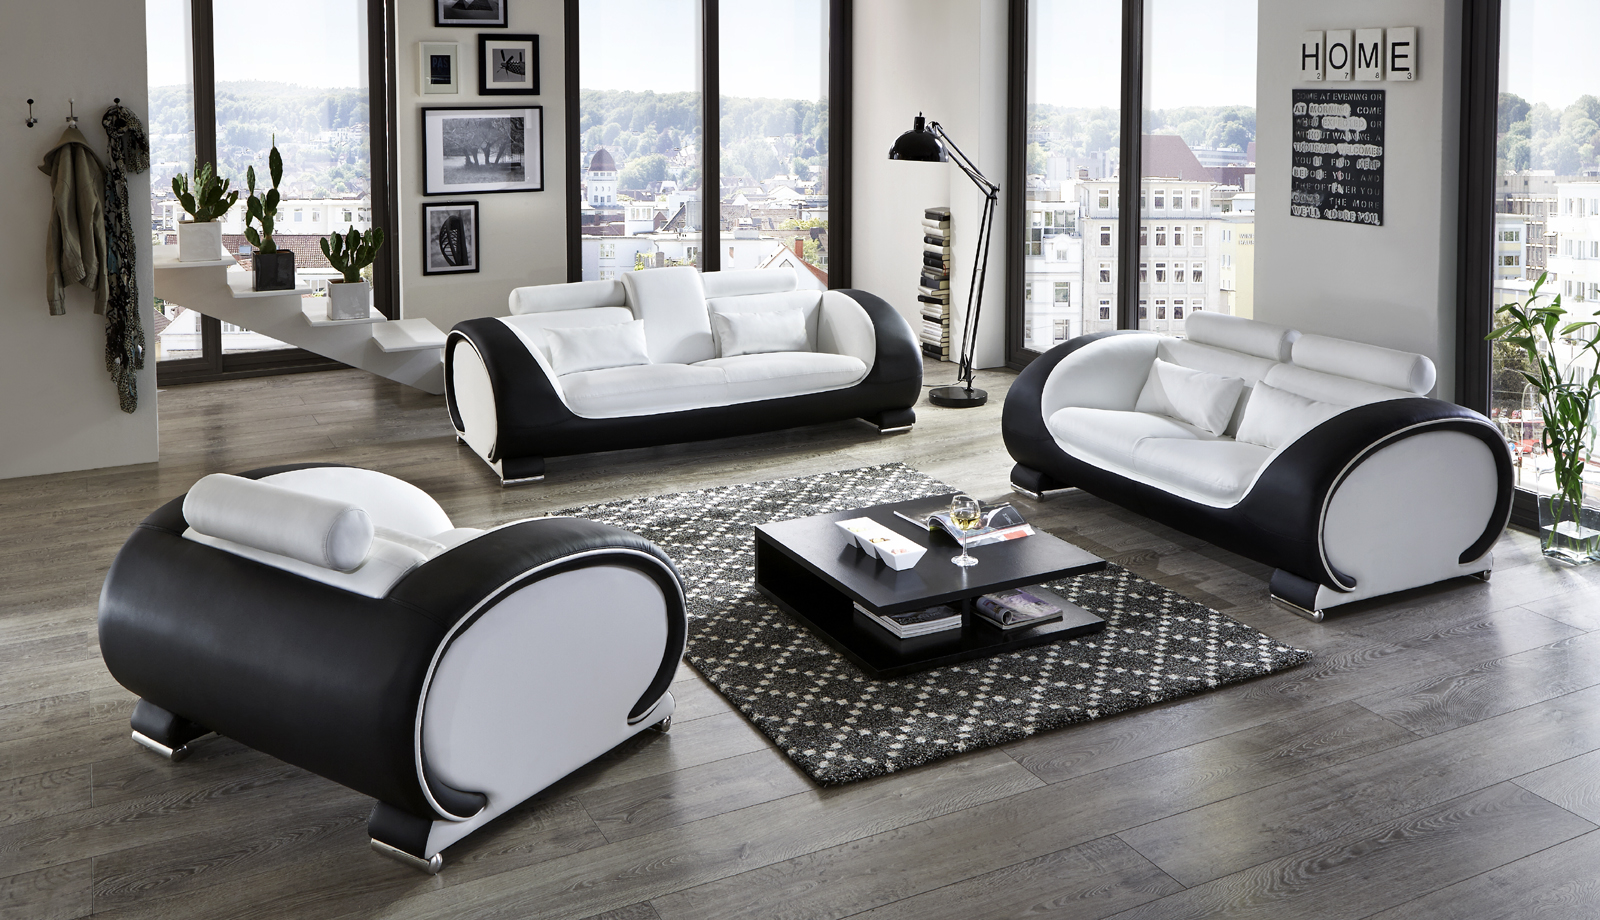 sam design garnitur sofa 3tlg in wei schwarz vigo 3 2 1 auf lager. Black Bedroom Furniture Sets. Home Design Ideas